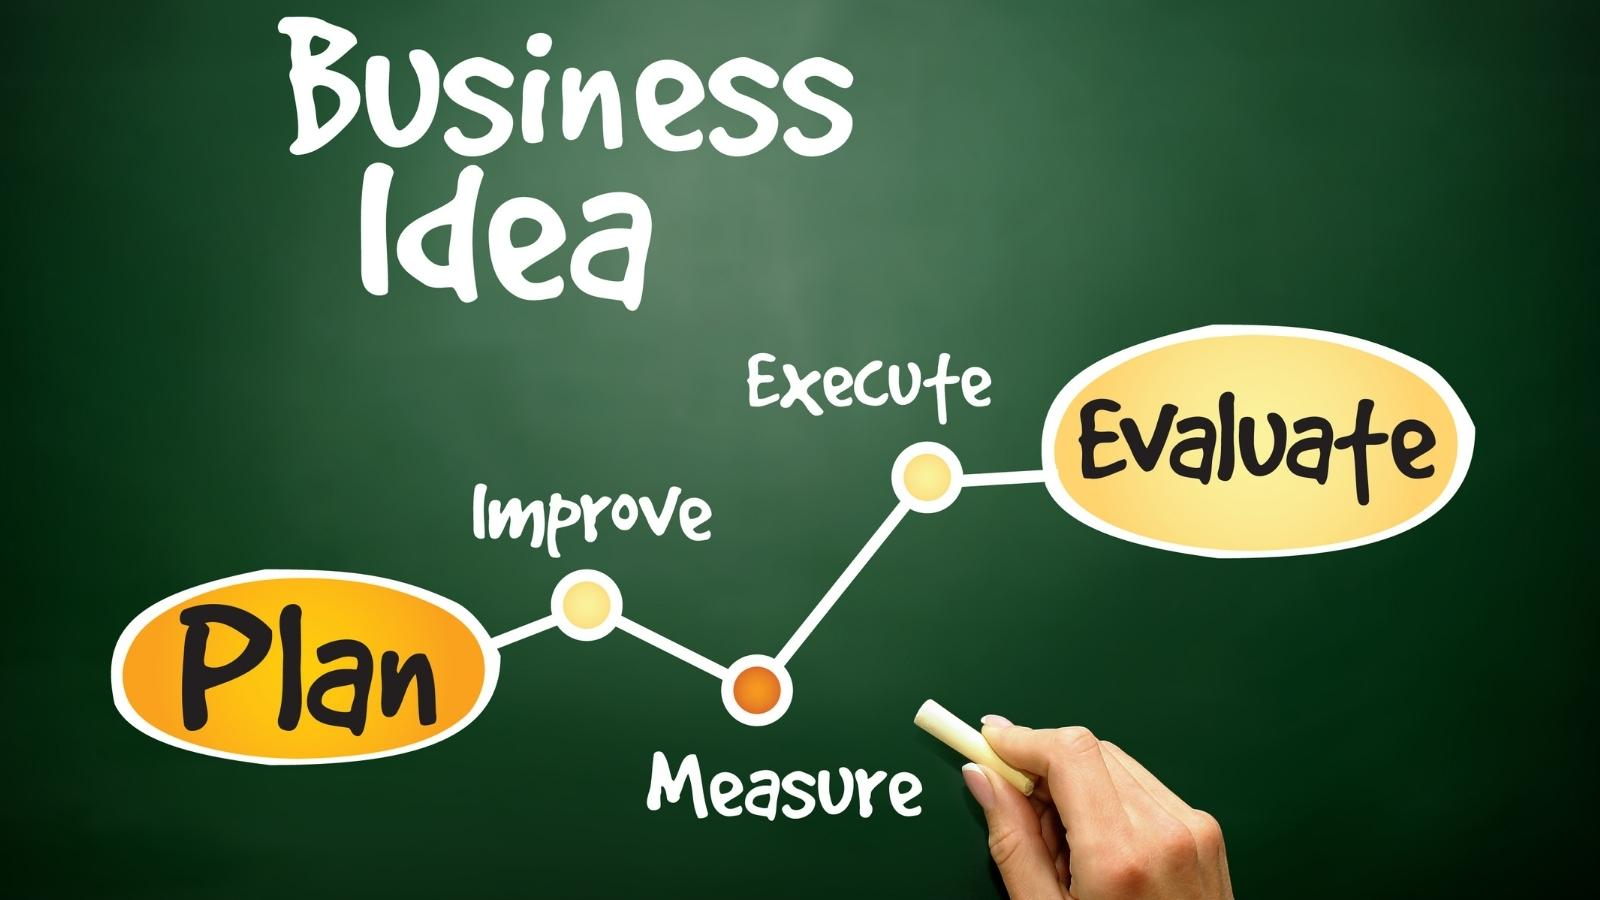 execute your business idea now